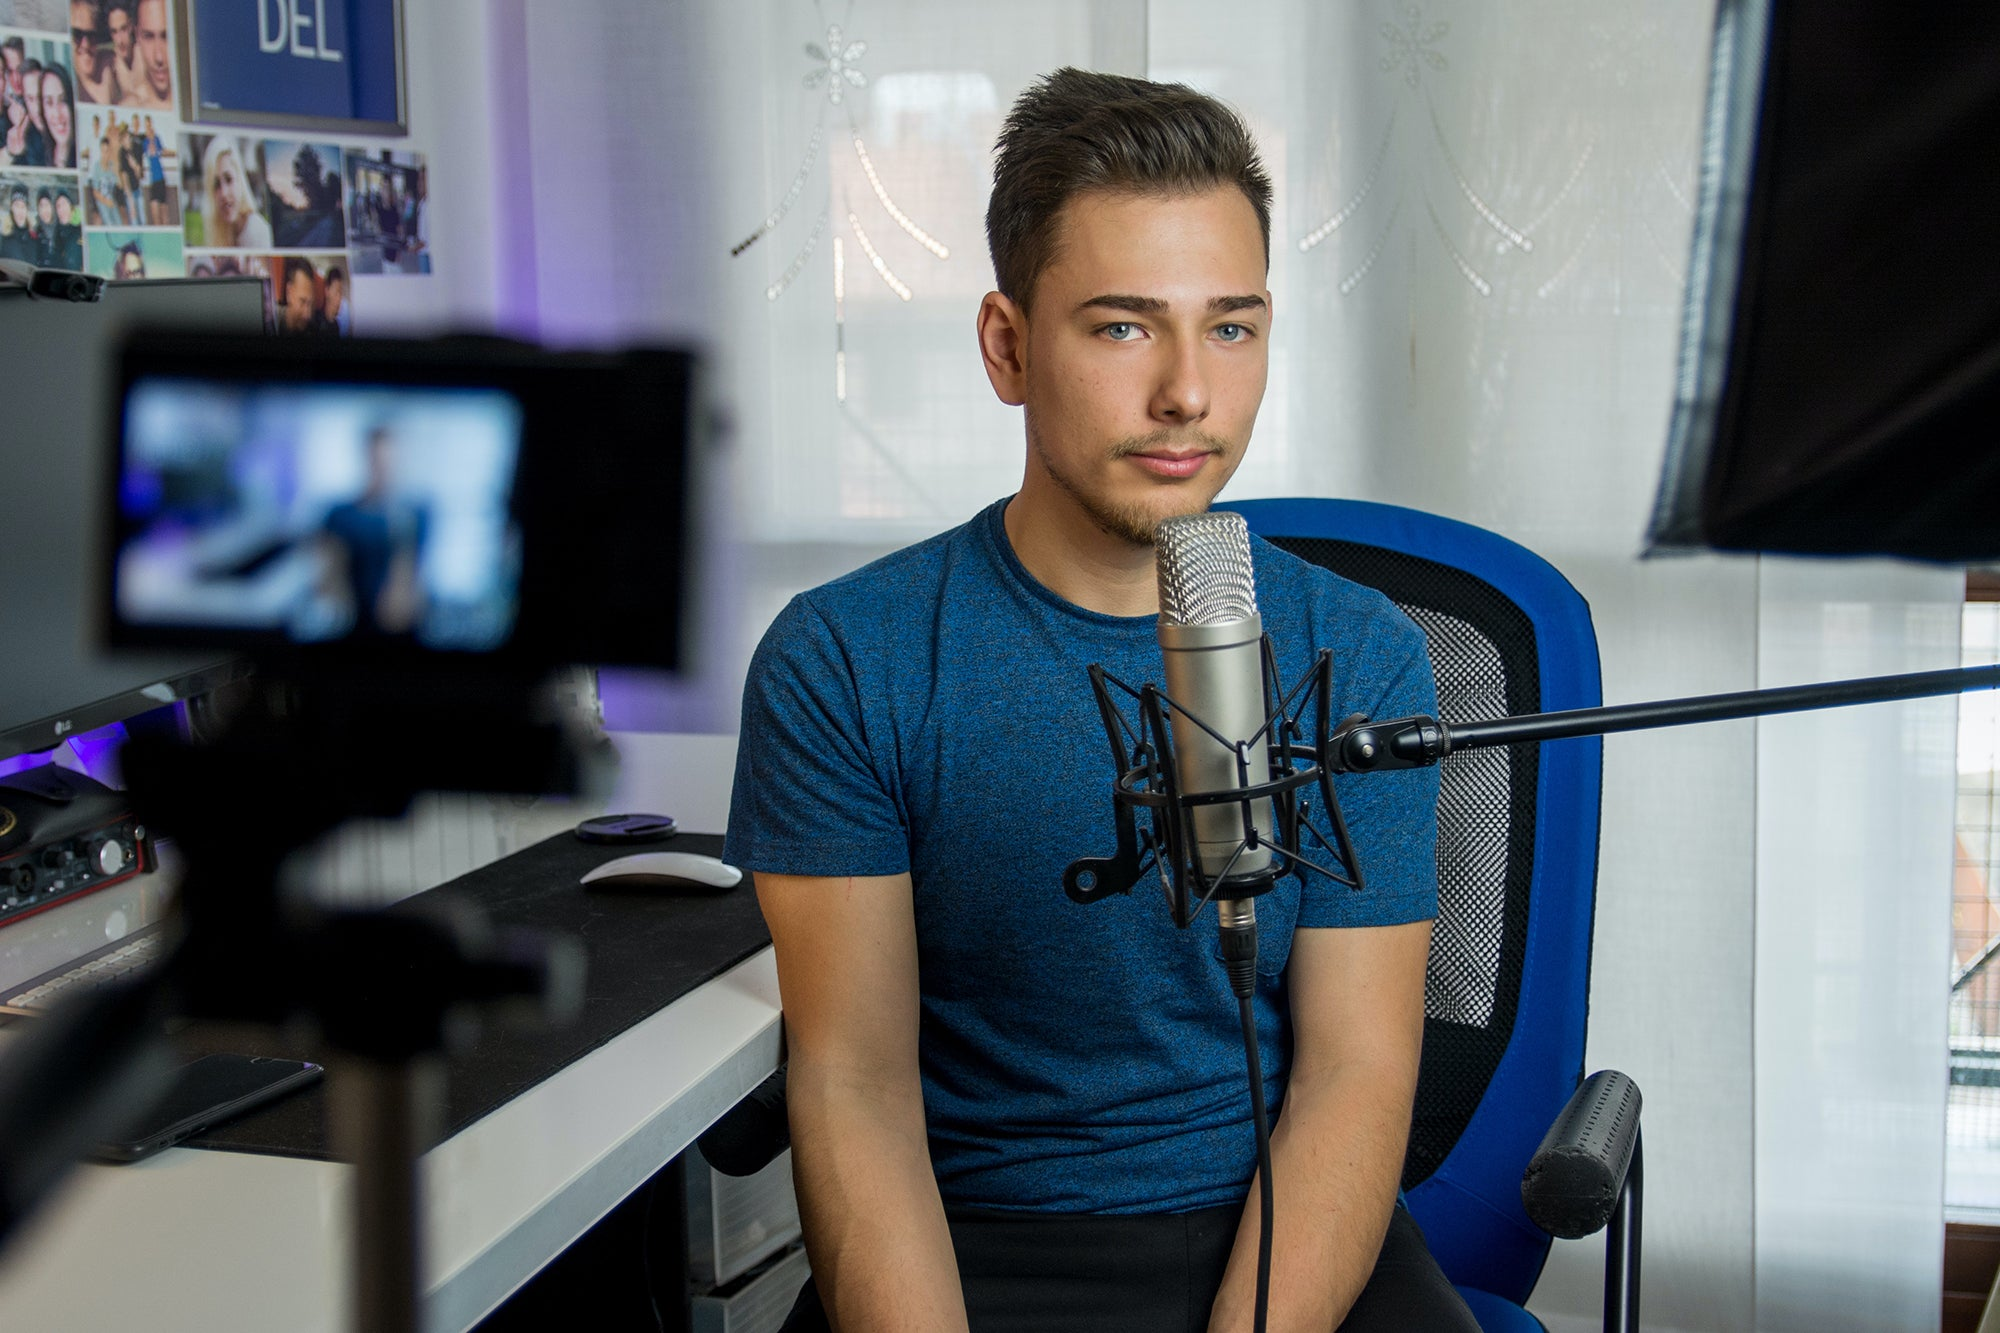 man in front of the best camera for streaming, with a microphone, sitting in a blue chair